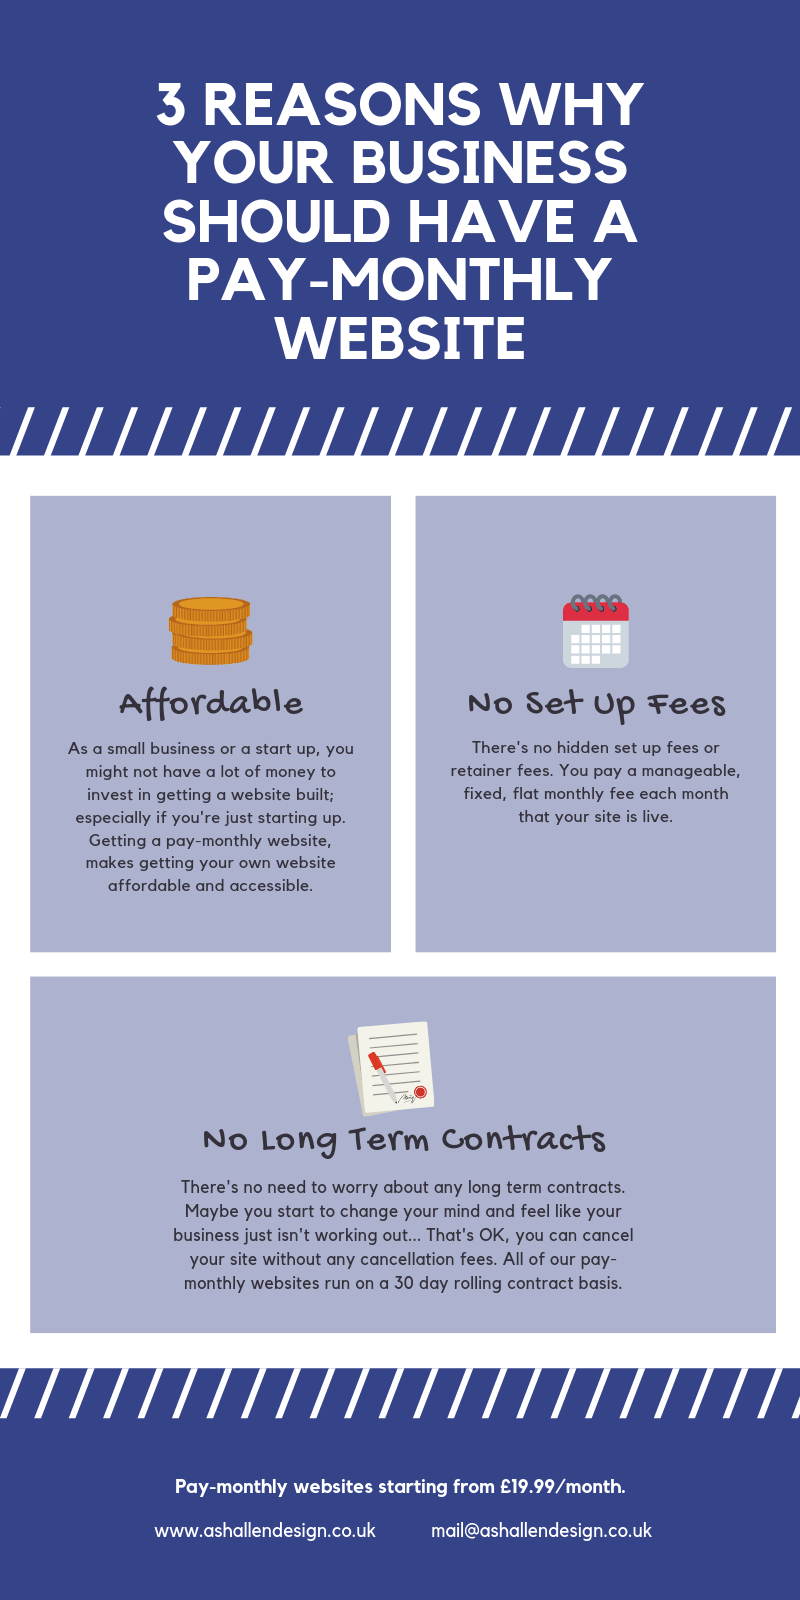 3 Reasons Why You Should Have a Pay-Monthly Website Design - Infographic Preston